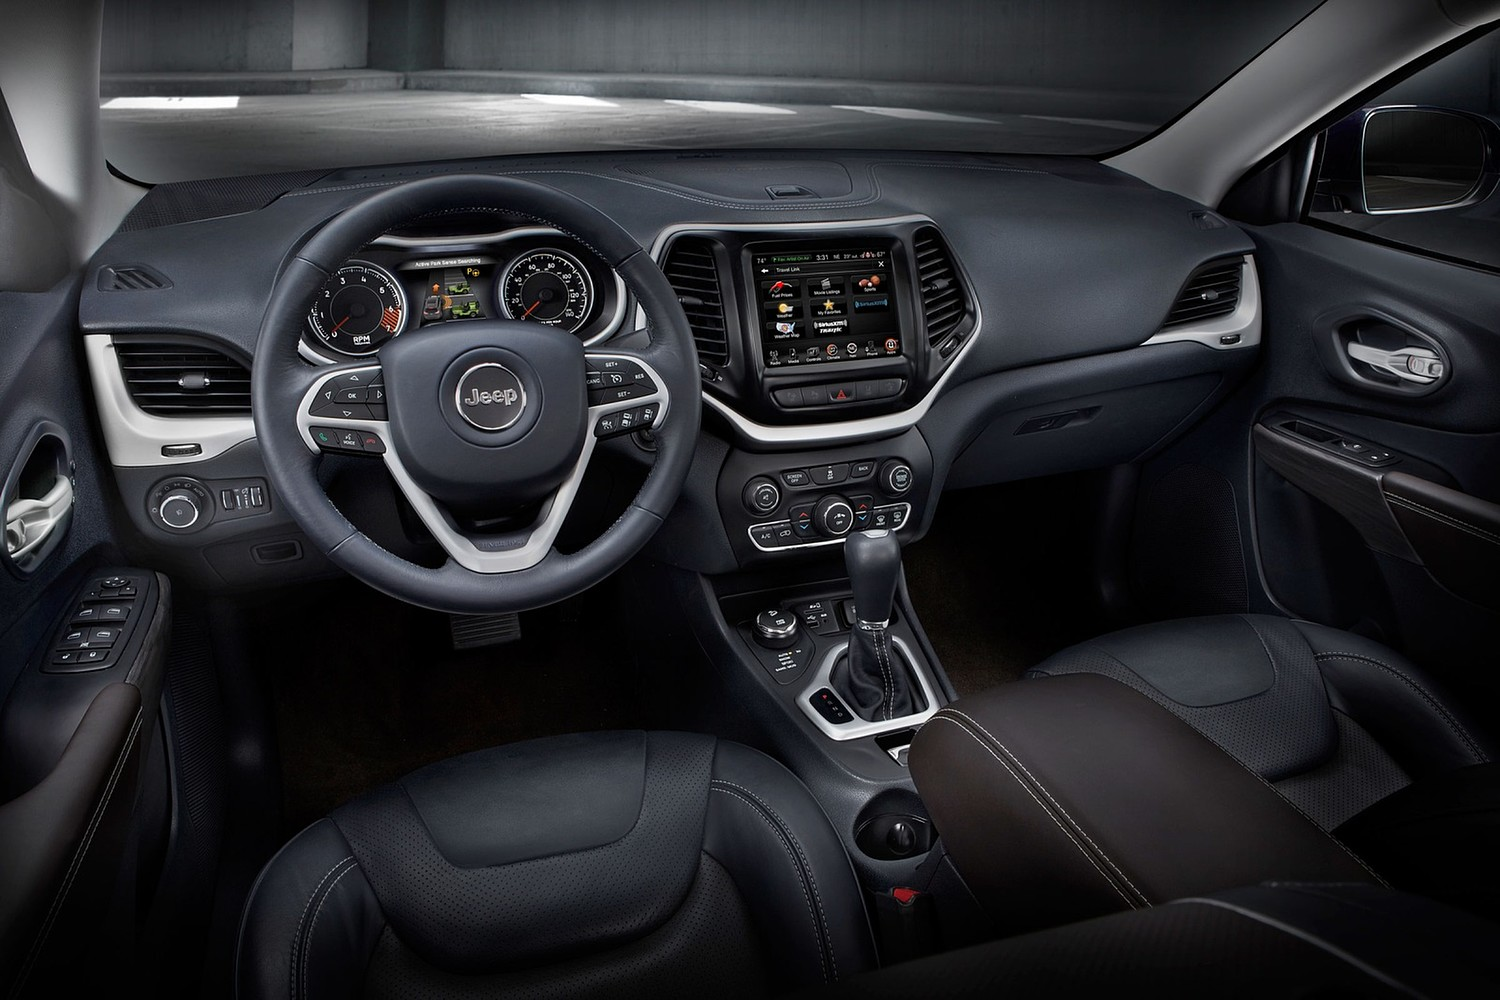 2018 Jeep Cherokee Limited 4dr SUV Dashboard Shown